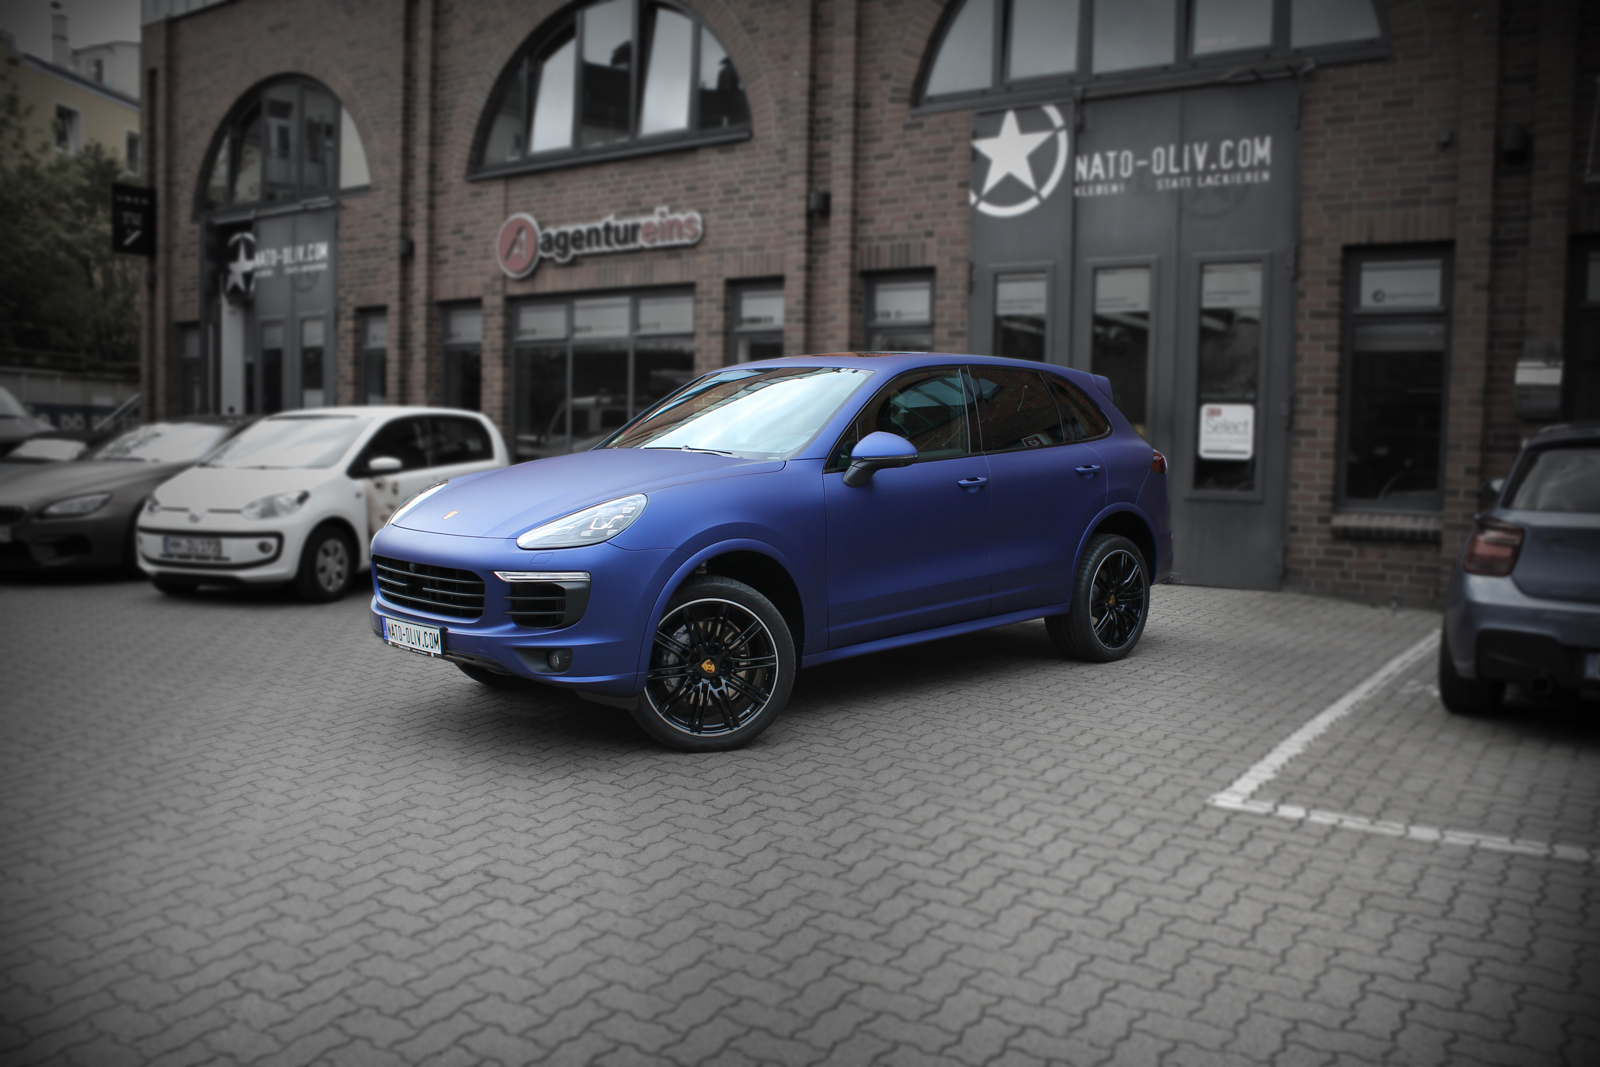 PORSCHE_CAYENNE_FOLIERUNG_MIDNIGHT_BLUE_MATT_METALLIC_TITELBILD